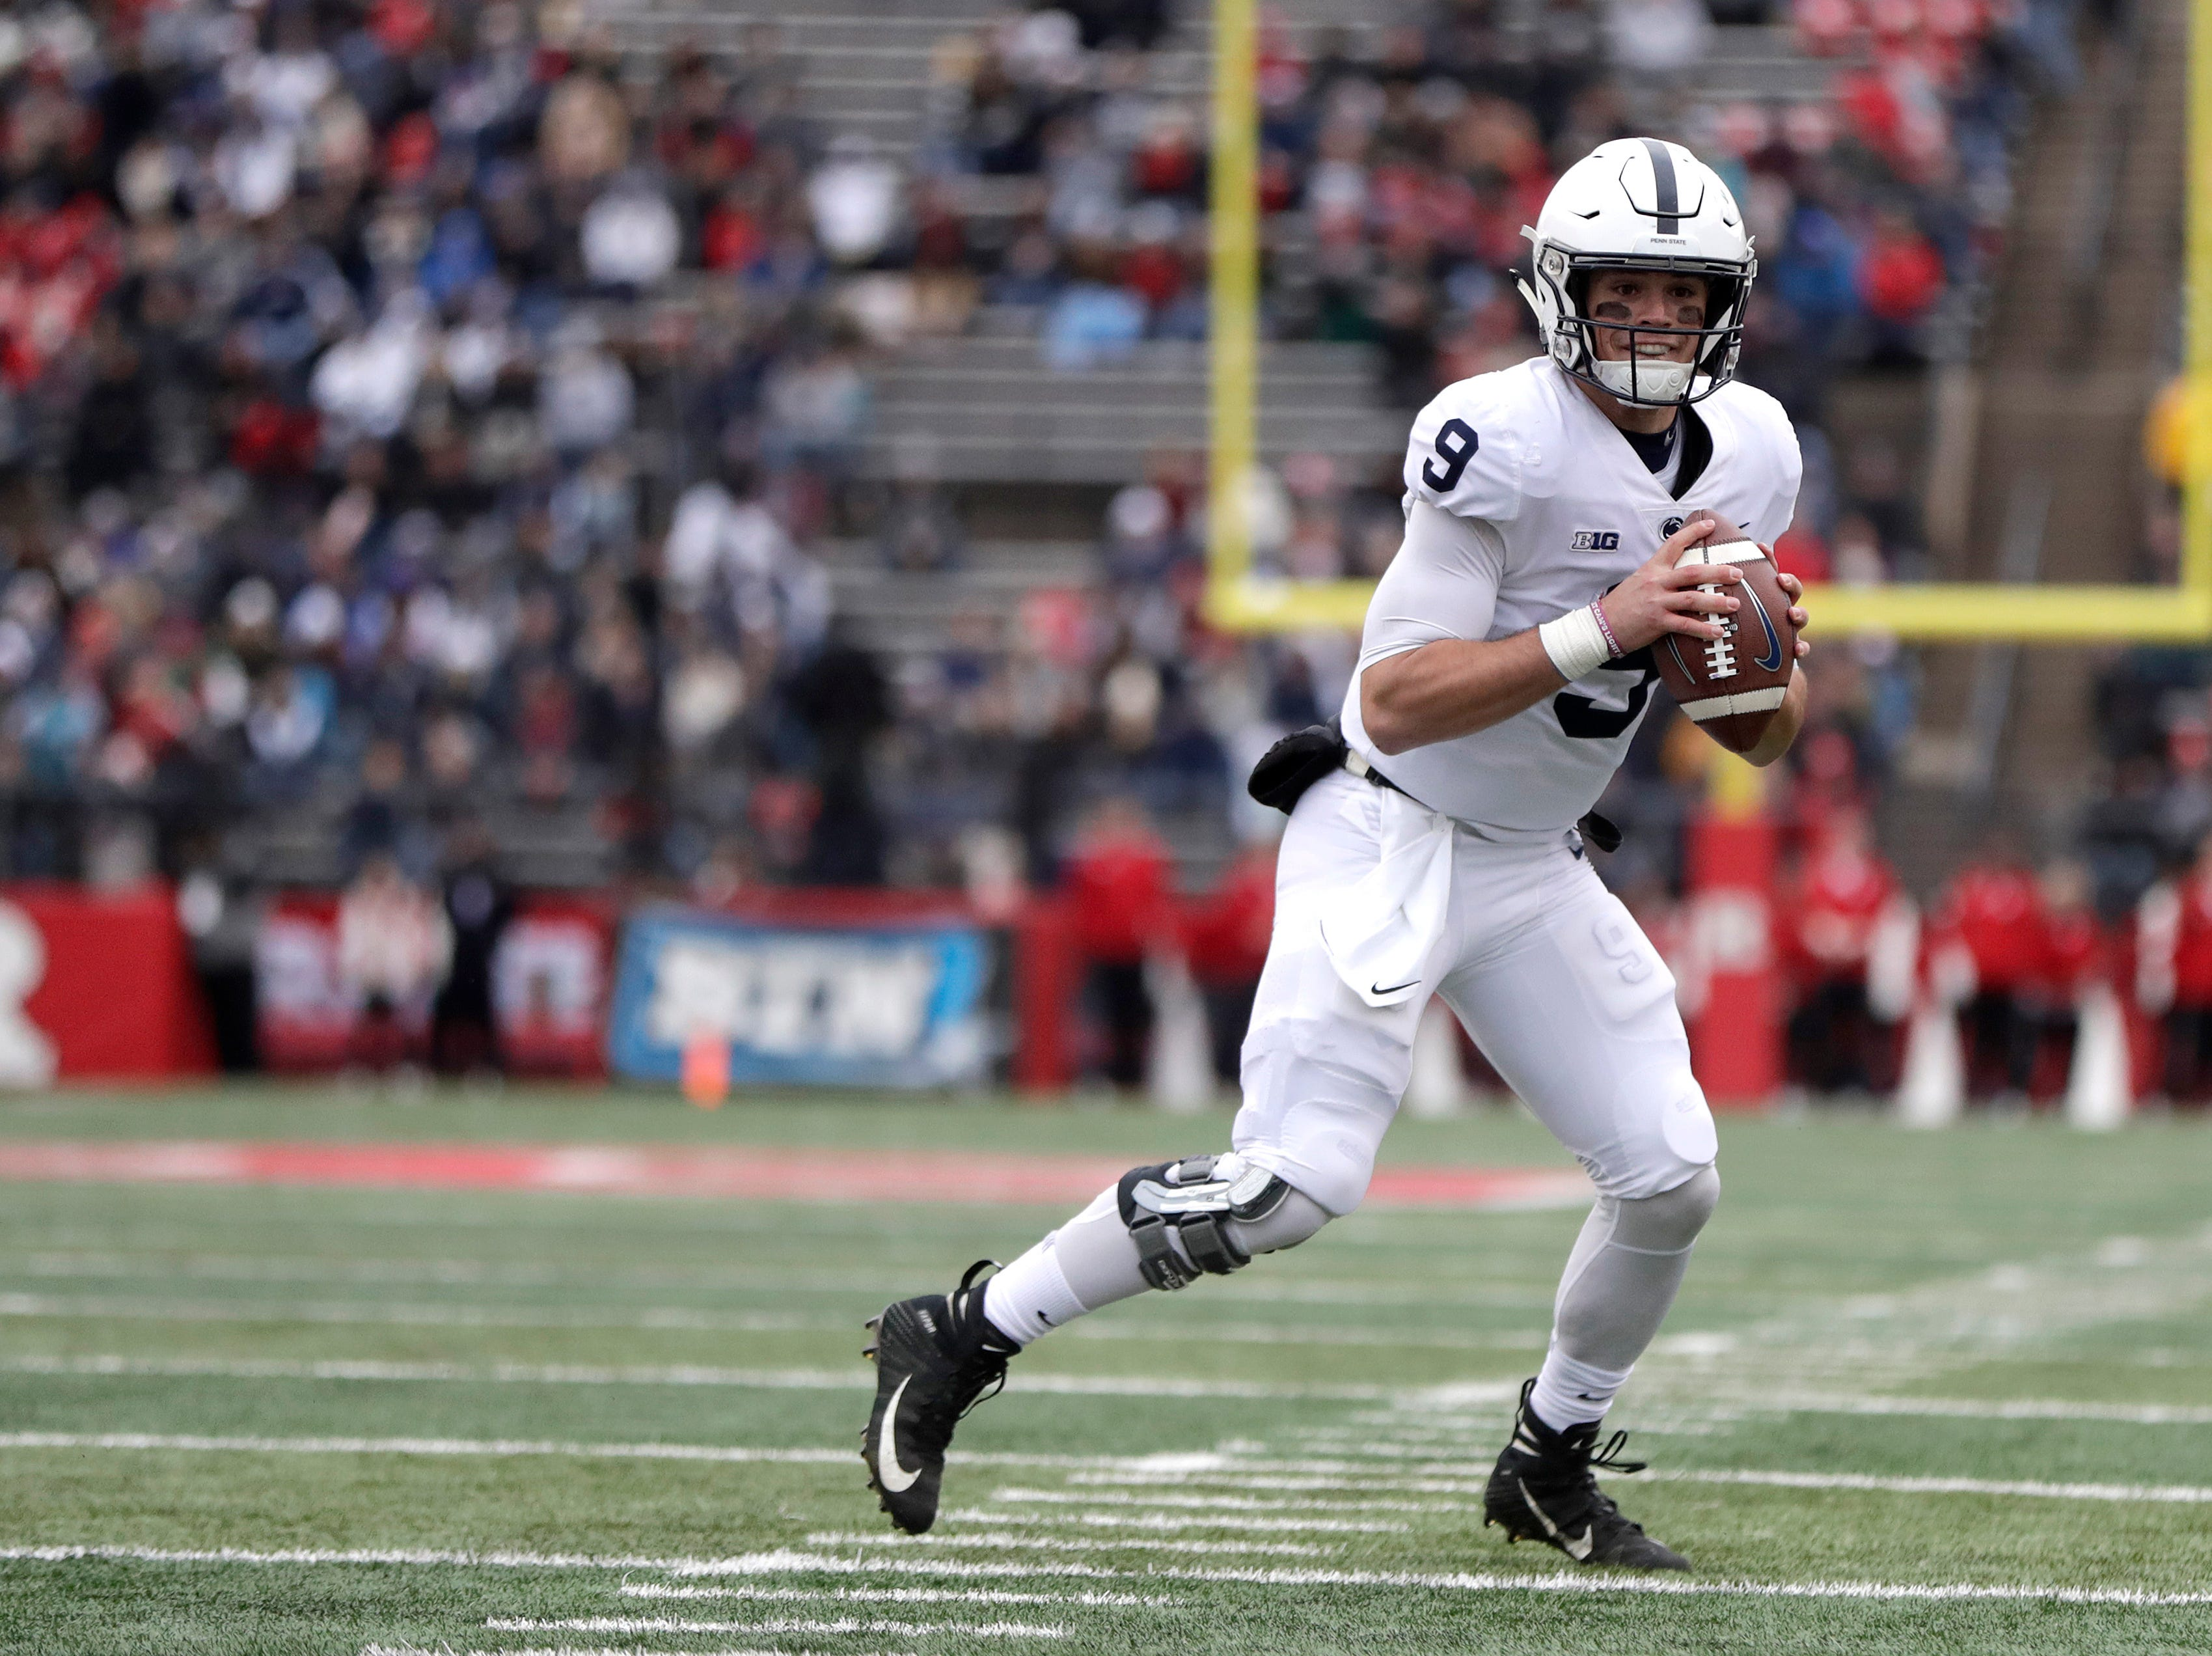 Penn State quarterback Trace McSorley looks to pass against Rutgers during the first half of an NCAA college football game, Saturday, Nov. 17, 2018, in Piscataway, N.J. McSorley connected with tight end Pat Freiermuth for a touchdown on the pass. (AP Photo/Julio Cortez)